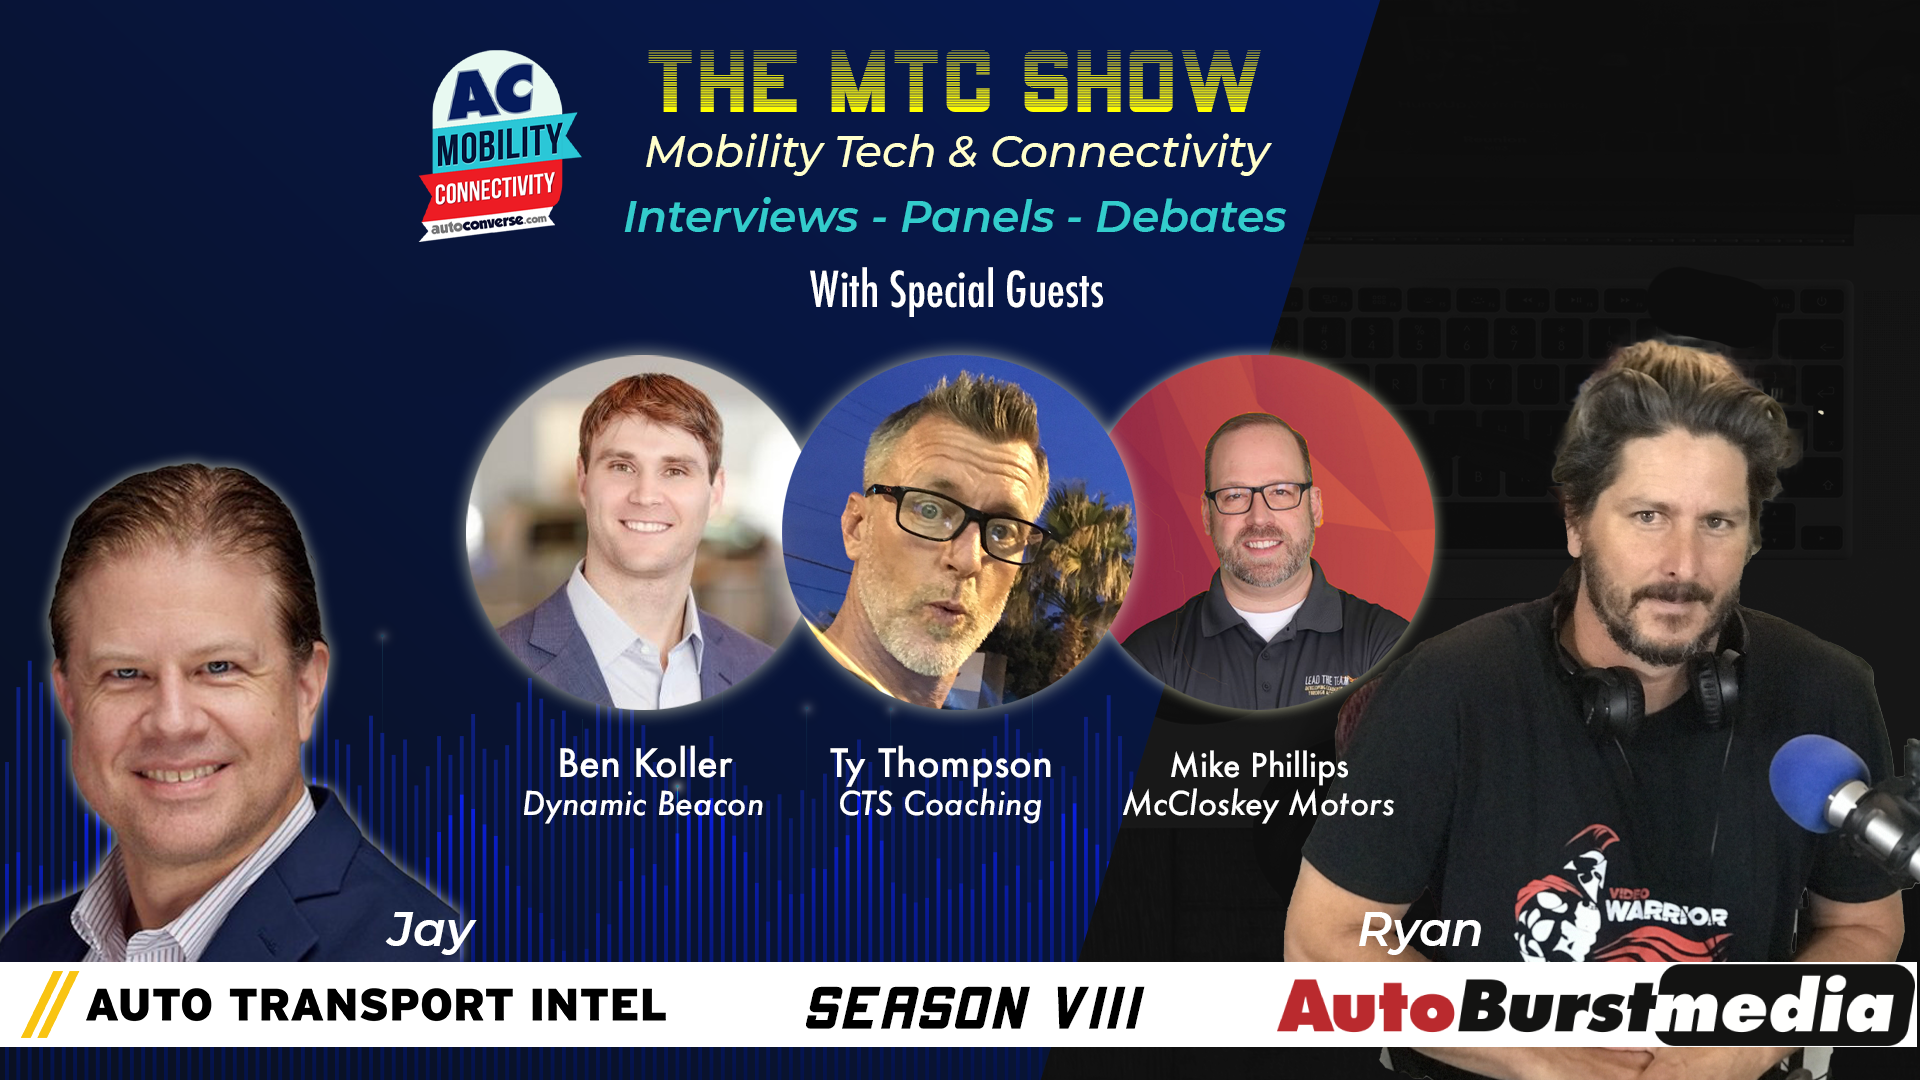 LIVE WED SEP 16. Hot Used Car Market, Vehicle Acquisition, Disposition, and Facebook Marketplace